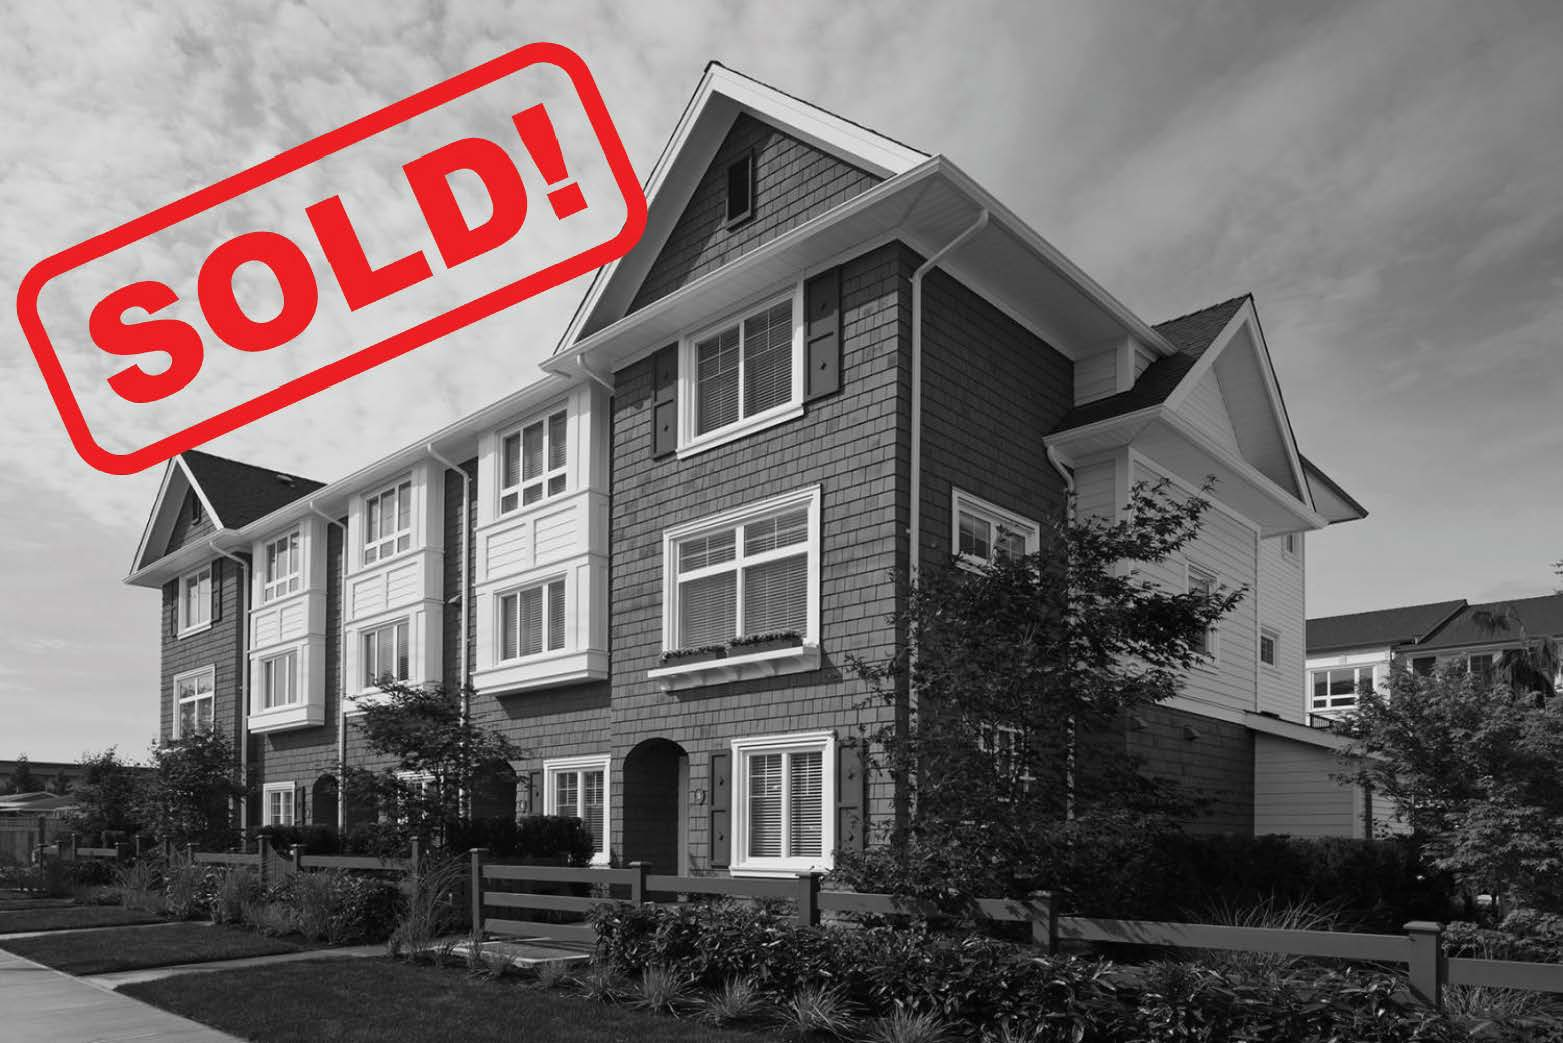 18-15268 28th Avenue   Sold for: $695,000  4 Bed | 3.5 Bath | 1,765 SF